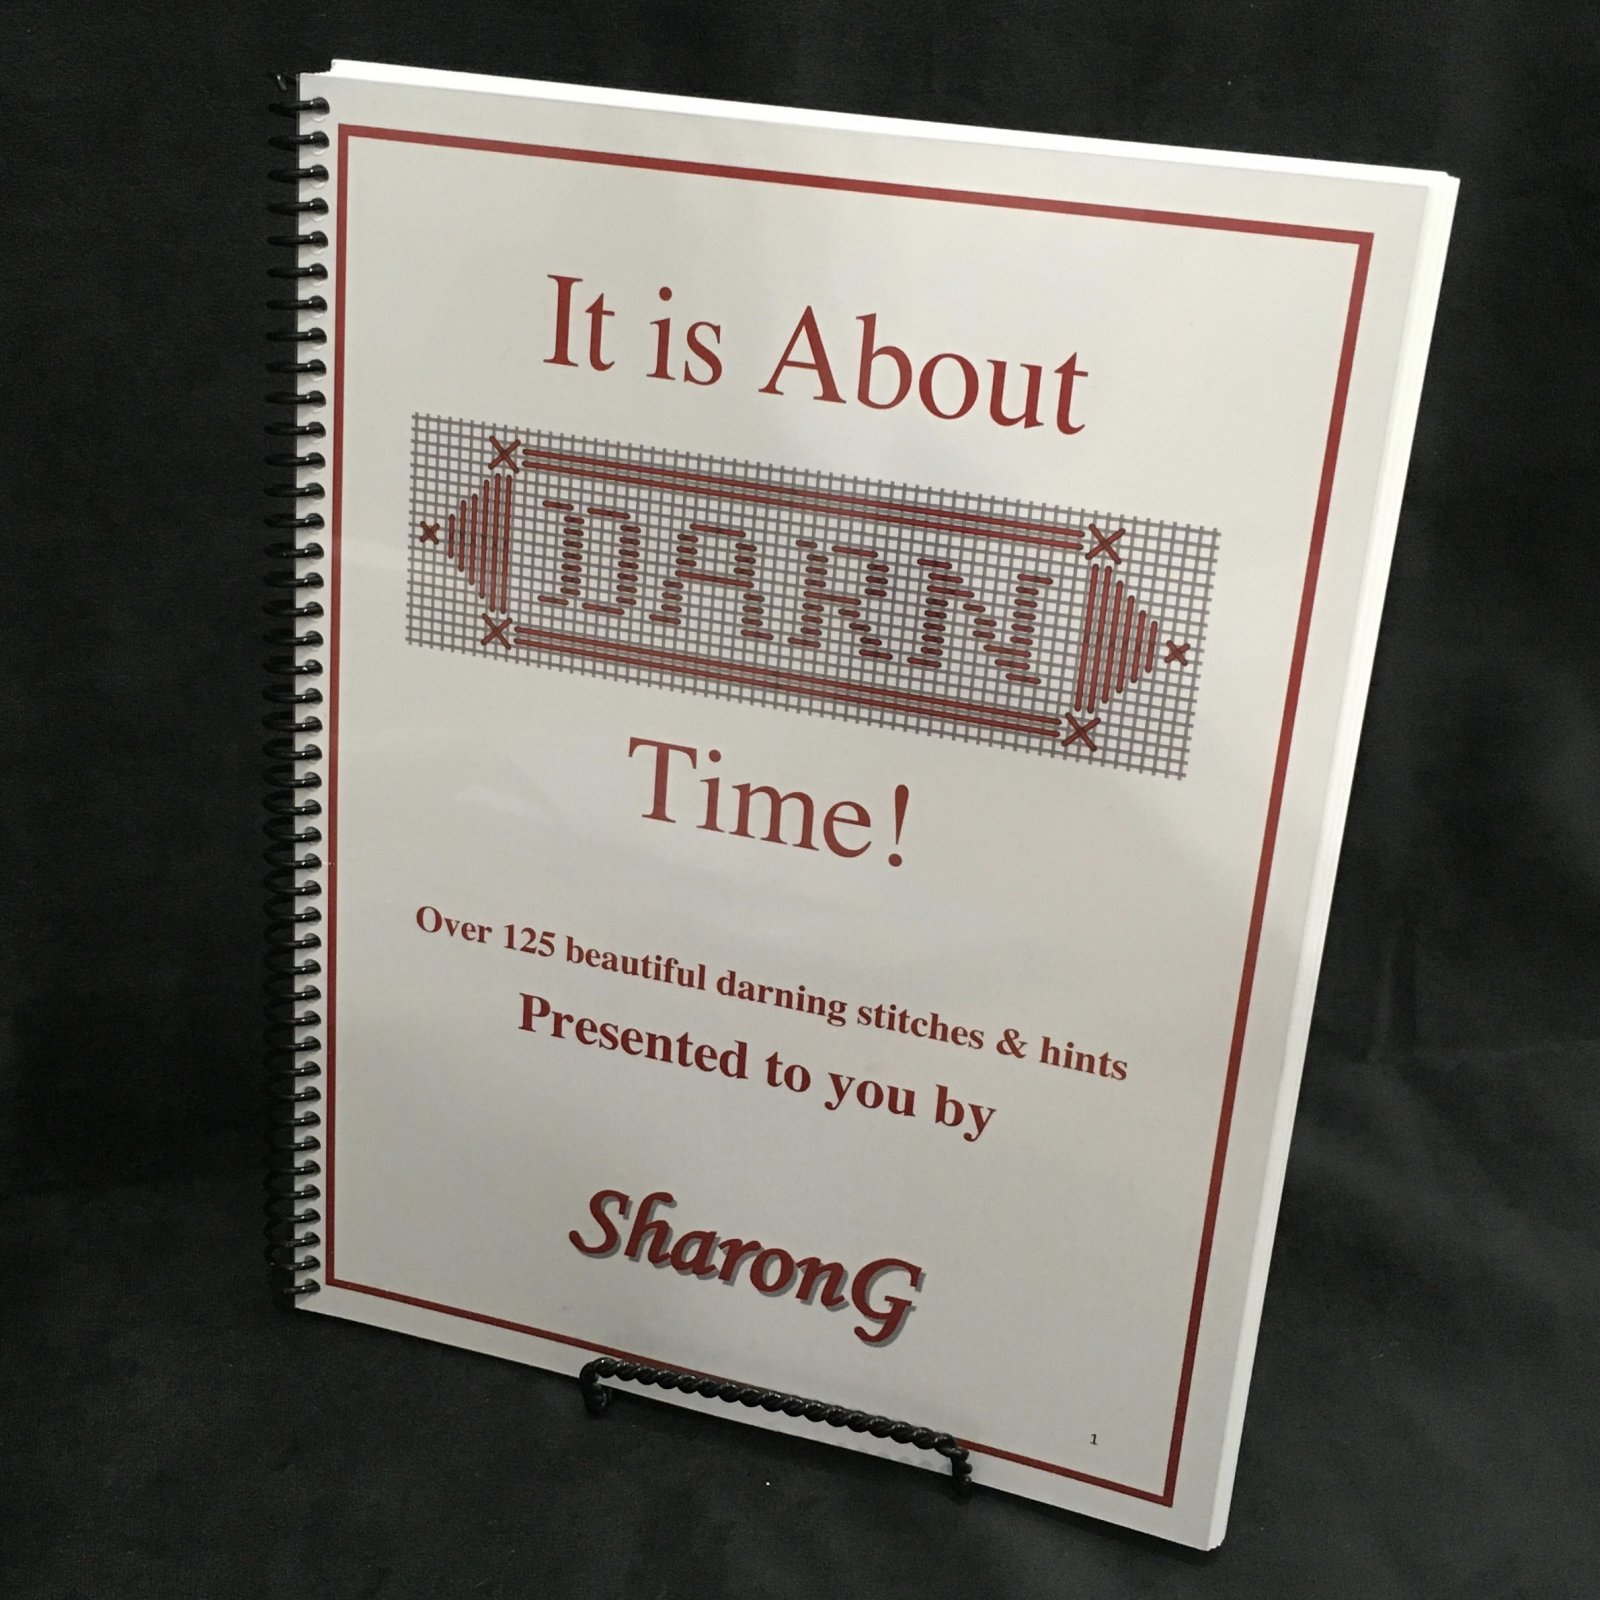 It Is About Darn Time! Book by SharonG